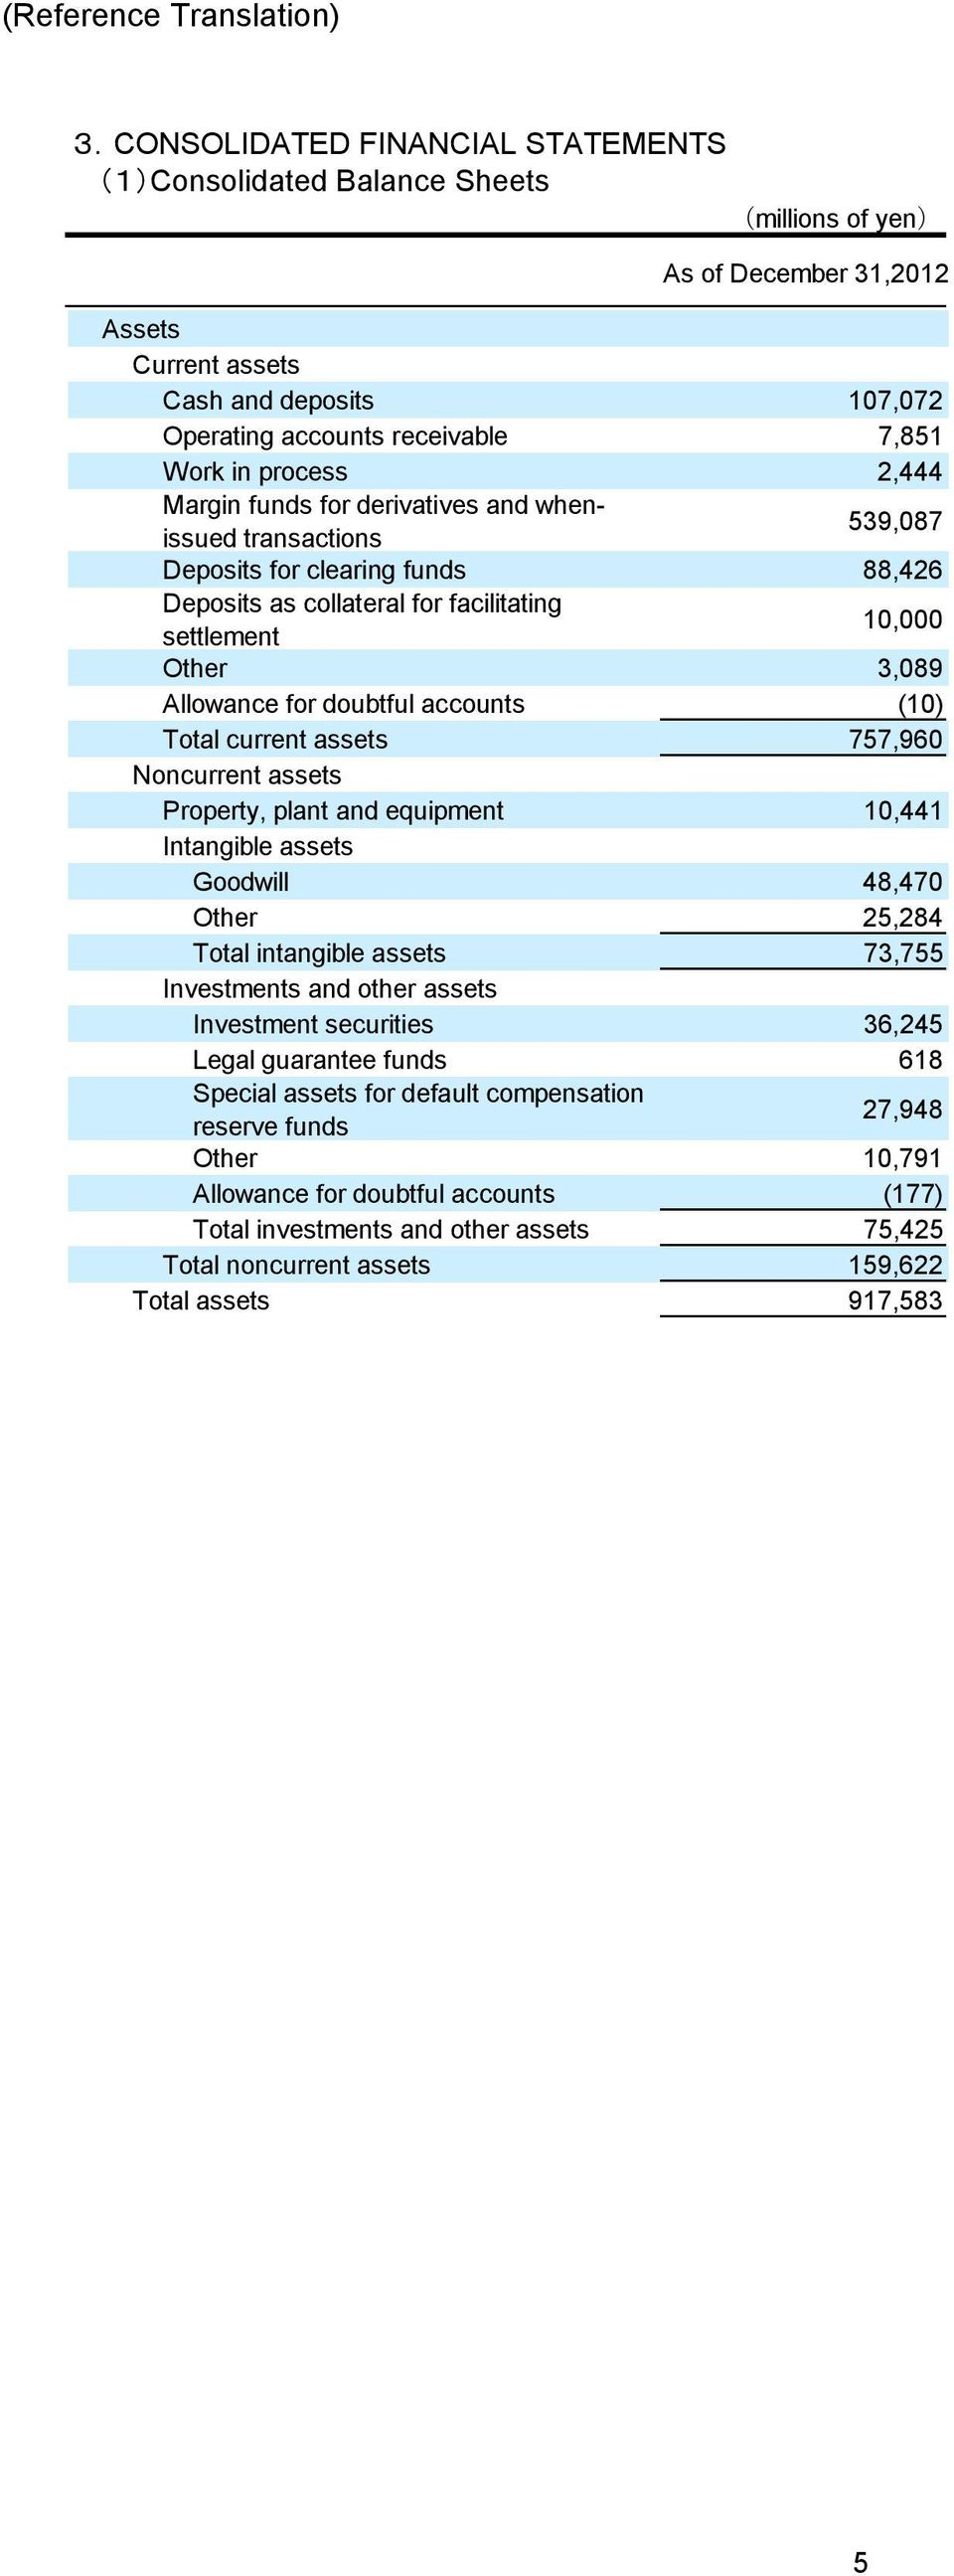 doubtful accounts (1) Total current assets 757,96 Noncurrent assets Property, plant and equipment 1,441 Intangible assets Goodwill 48,47 Other 25,284 Total intangible assets 73,755 Investments and